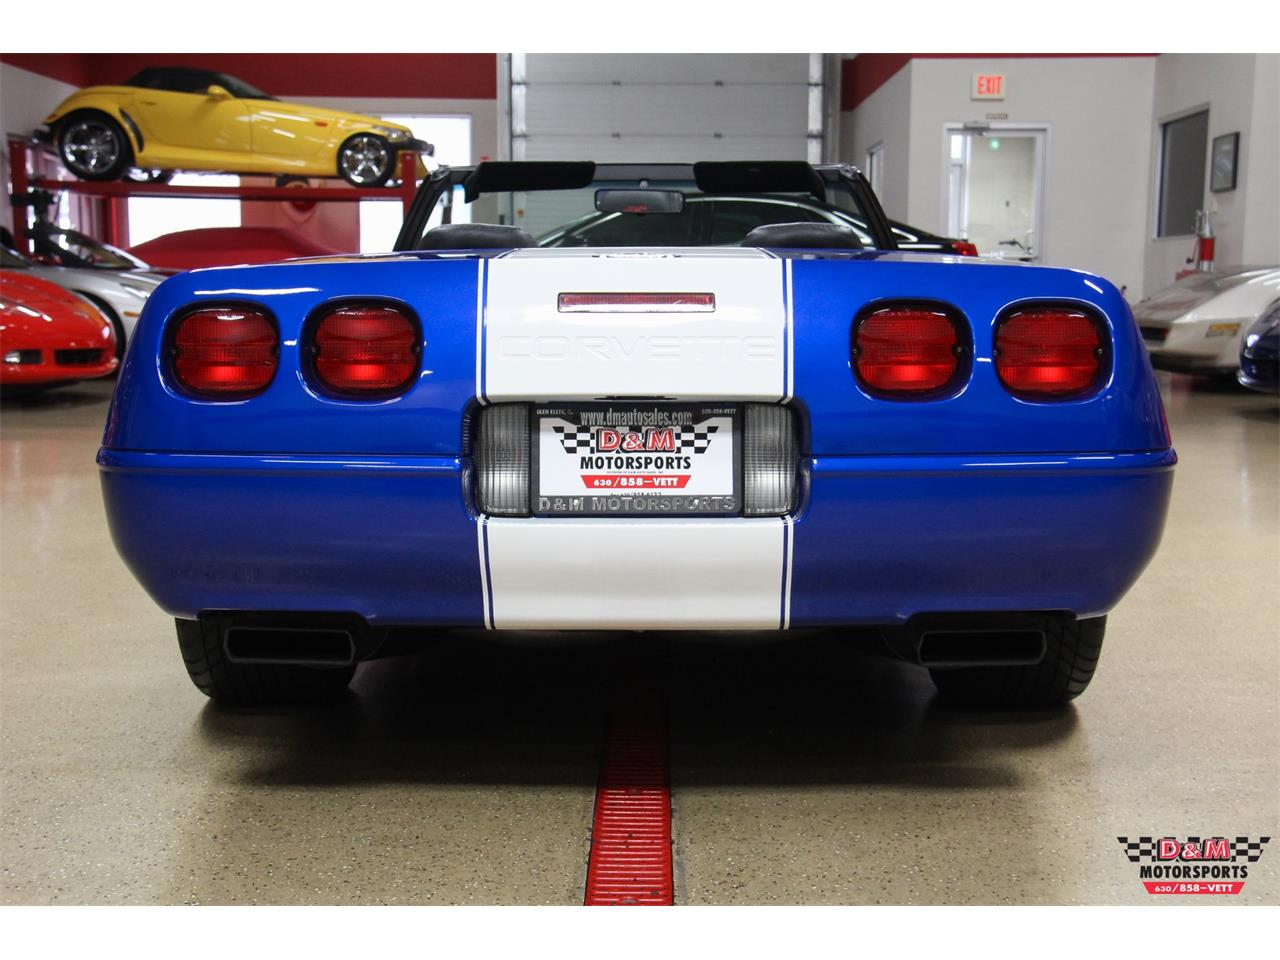 Large Picture of '96 Corvette located in Glen Ellyn Illinois - $44,995.00 Offered by D & M Motorsports - LV9Z